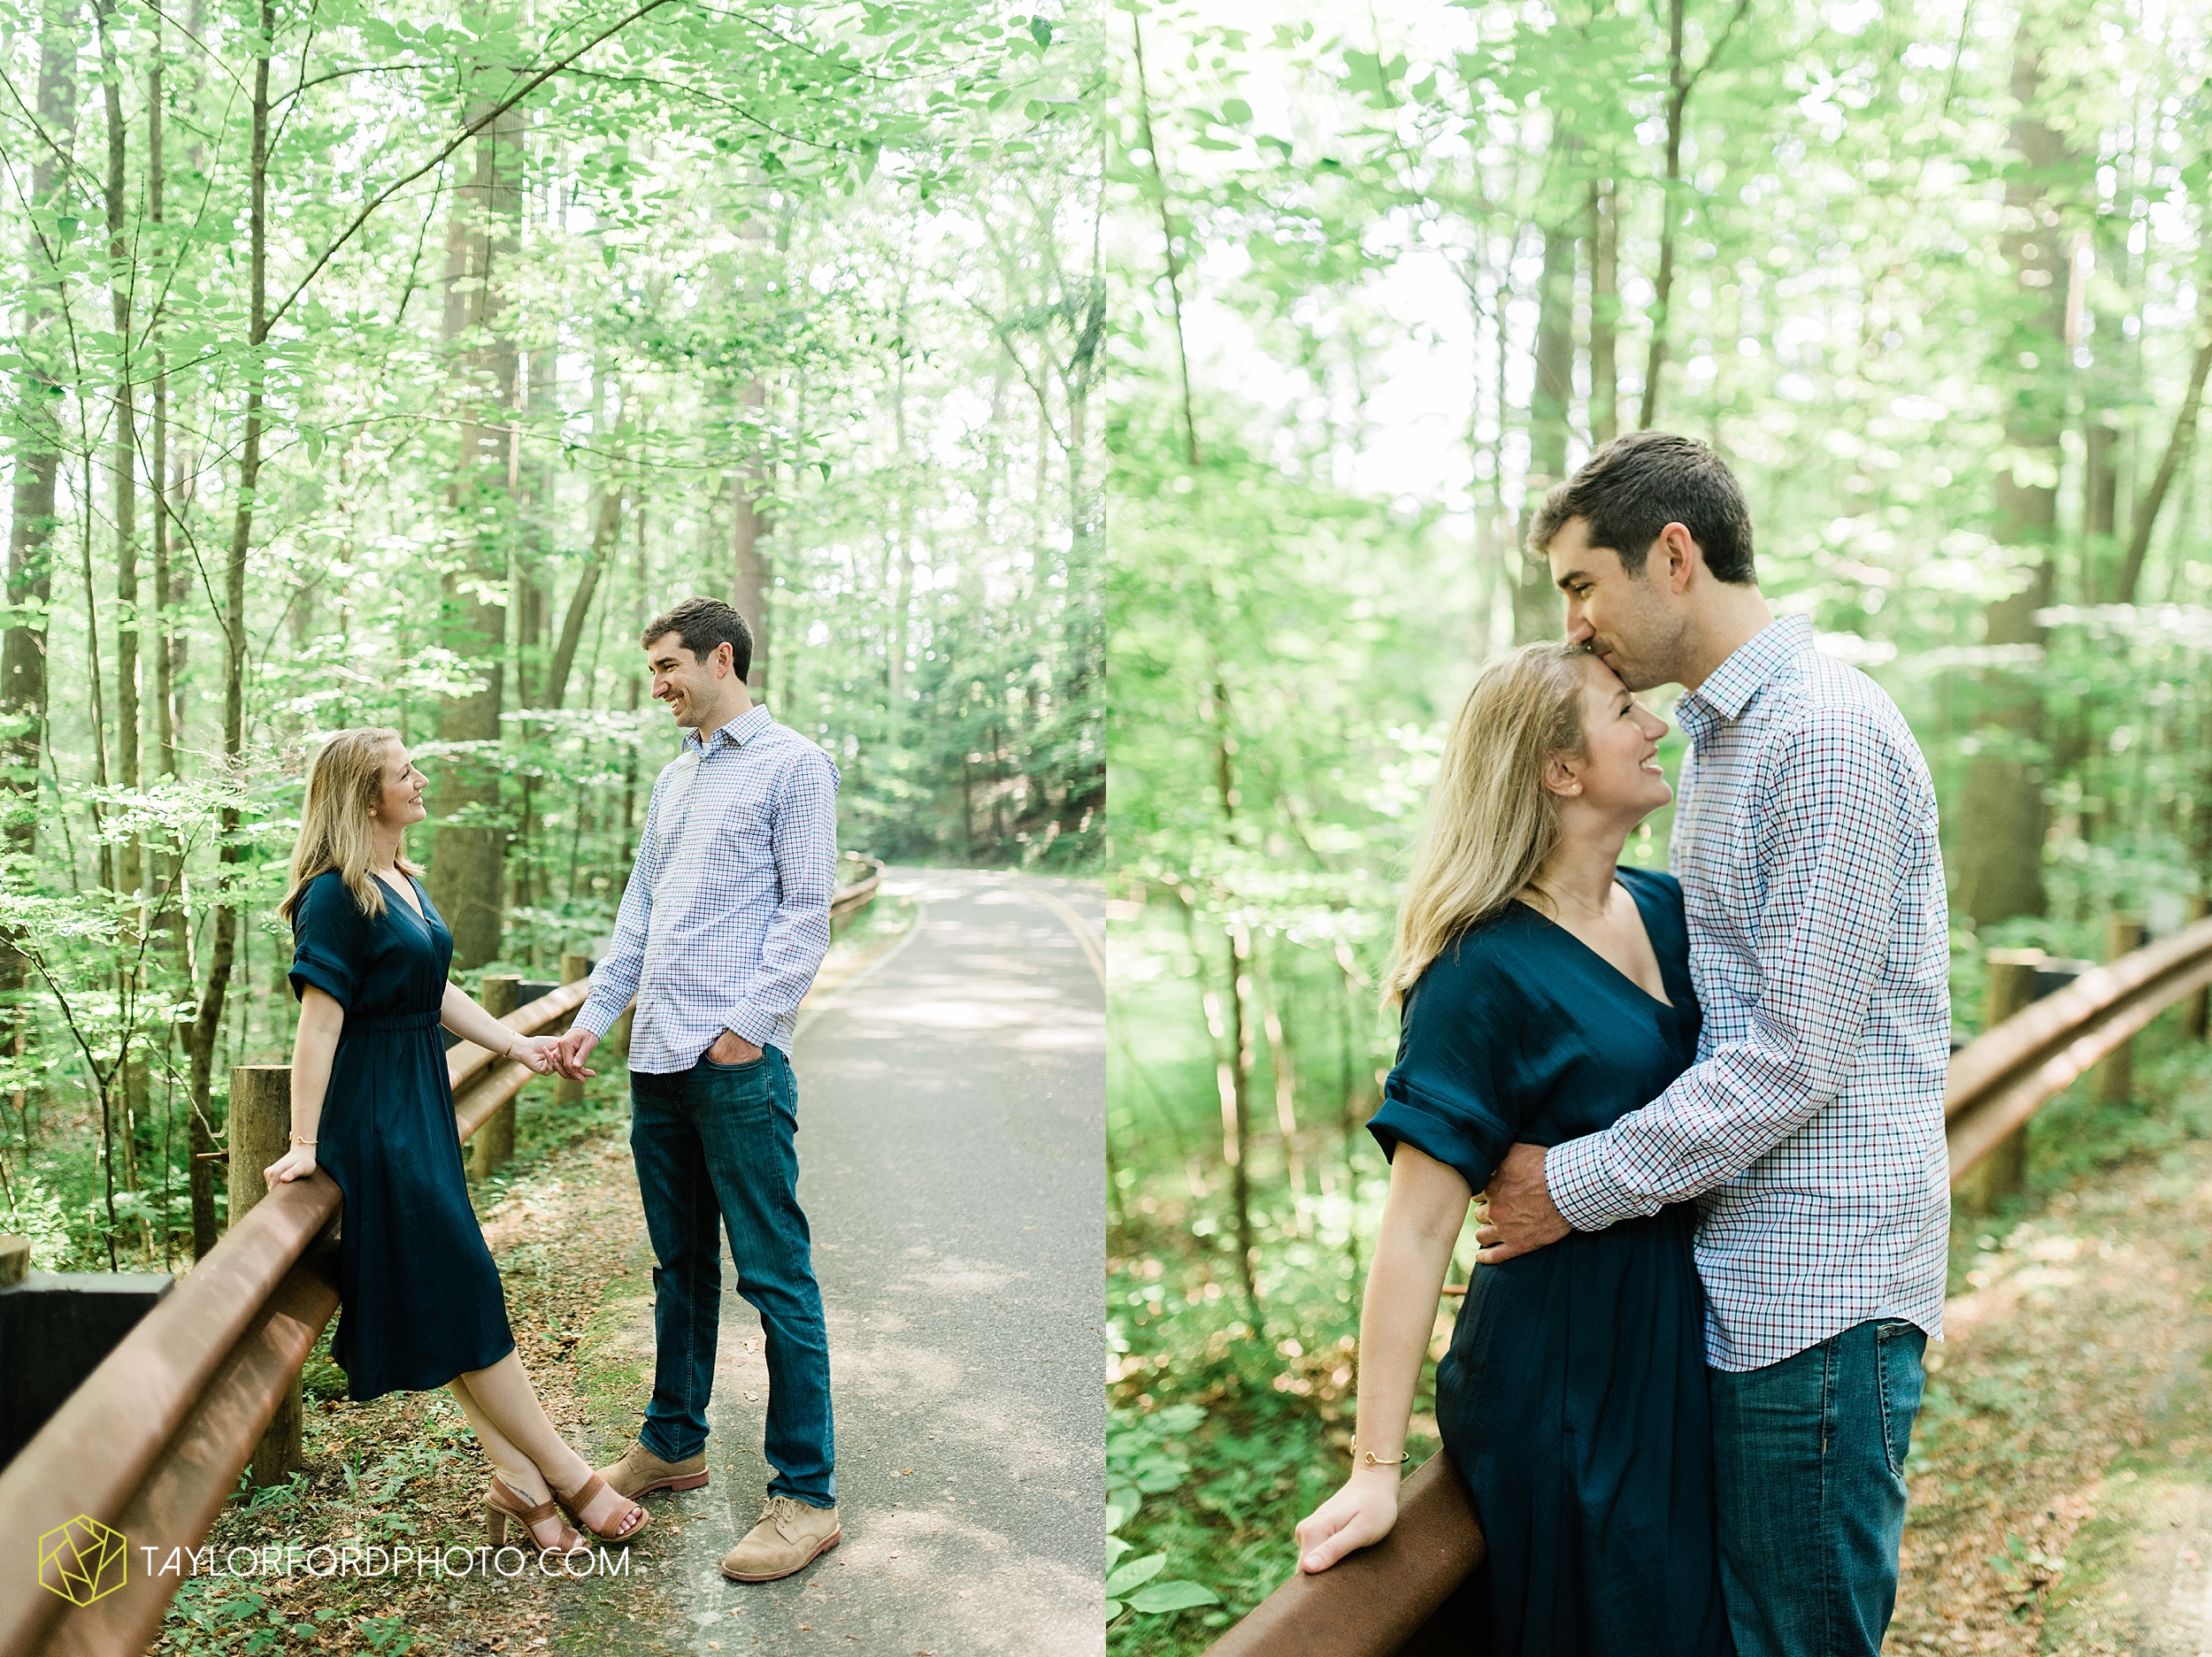 margo-evan-kohler-south-chagrin-reservation-chagrin-falls-cleveland-ohio-engagement-wedding-photographer-Taylor-Ford-Photography_8175.jpg